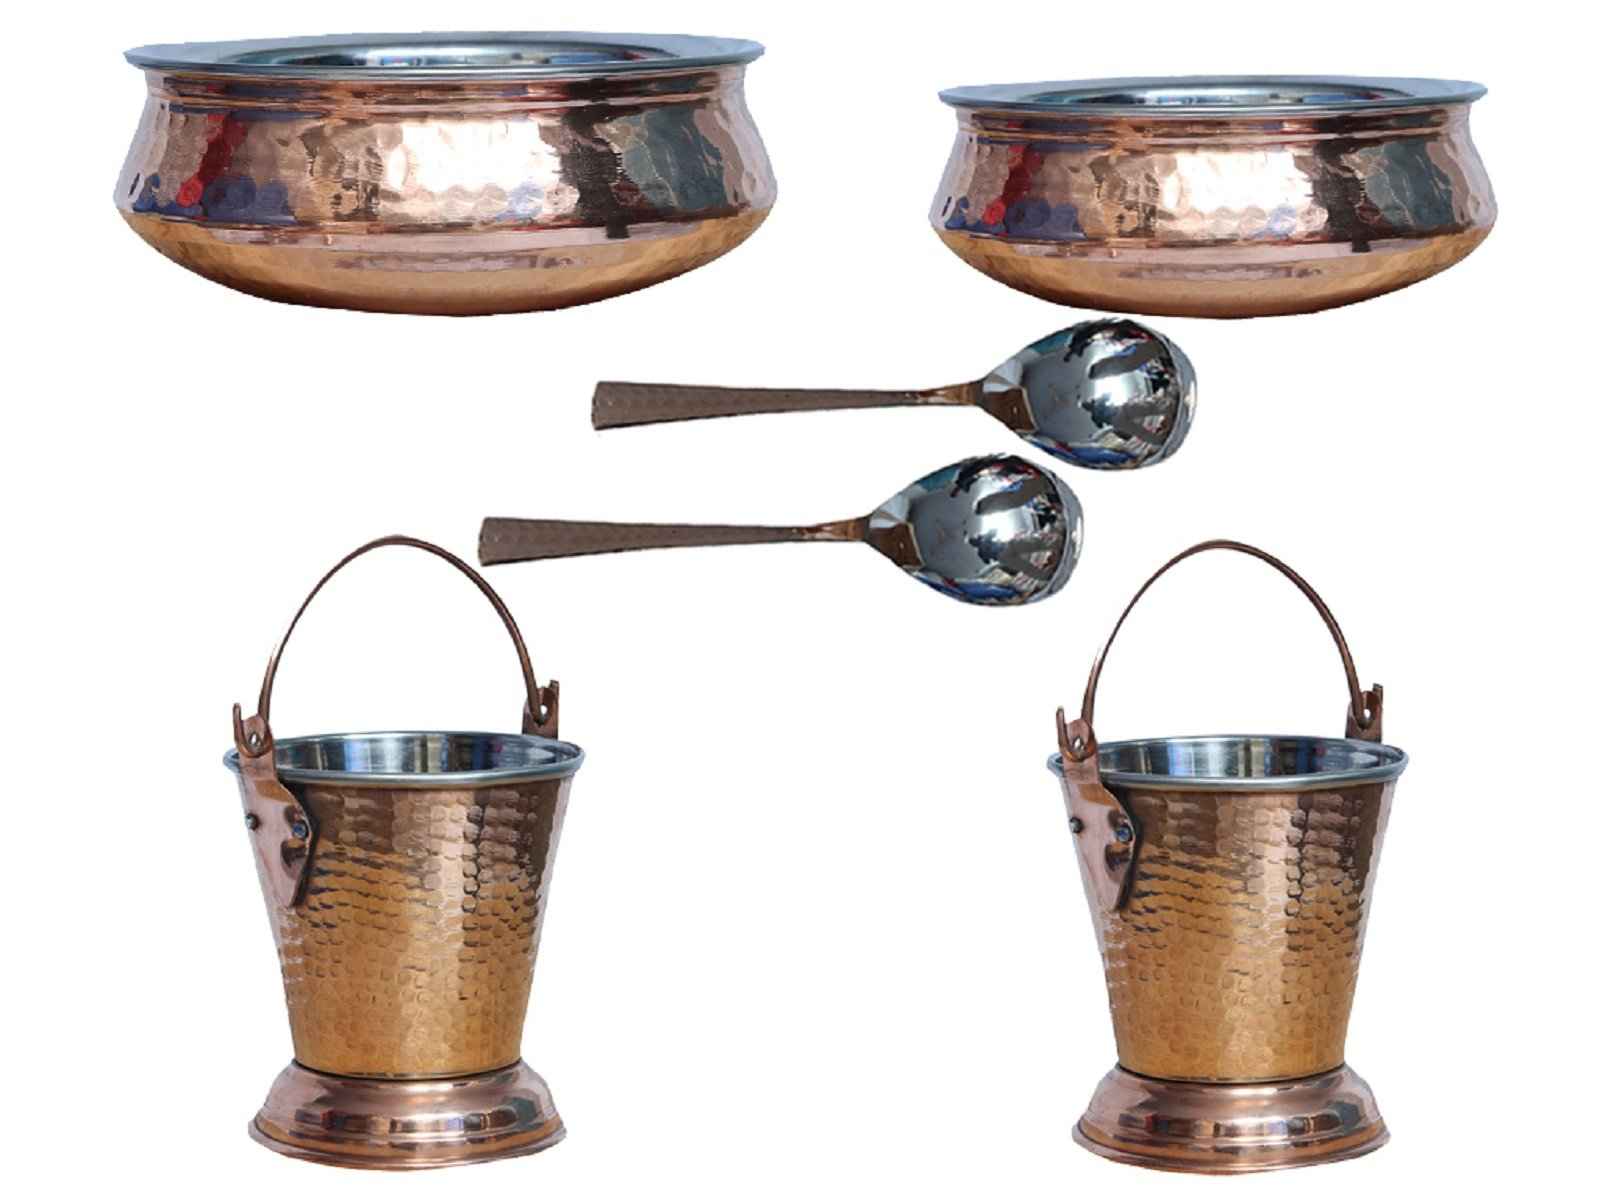 Kuber Industries Handmade Hammered Copper Steel /Copper Gravy Bucket/Balti 2 Pcs with 2 Handi Bowl and 2 Spoon For Serving Dishes (Buck47)